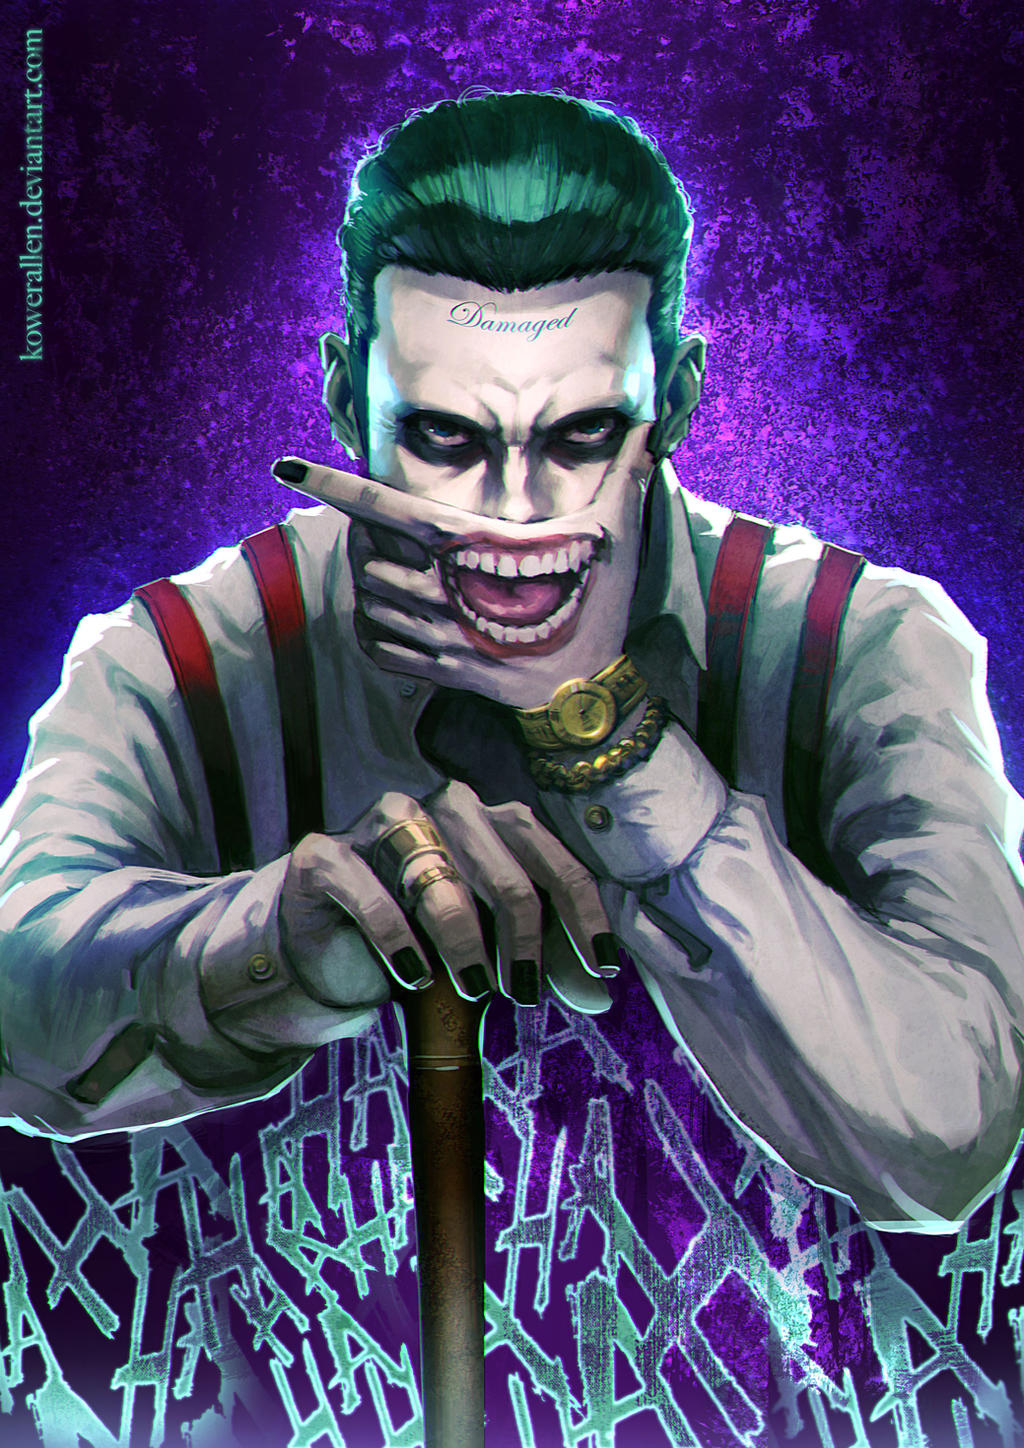 1080x1080 joker images reverse search for Suicide squad face tattoo